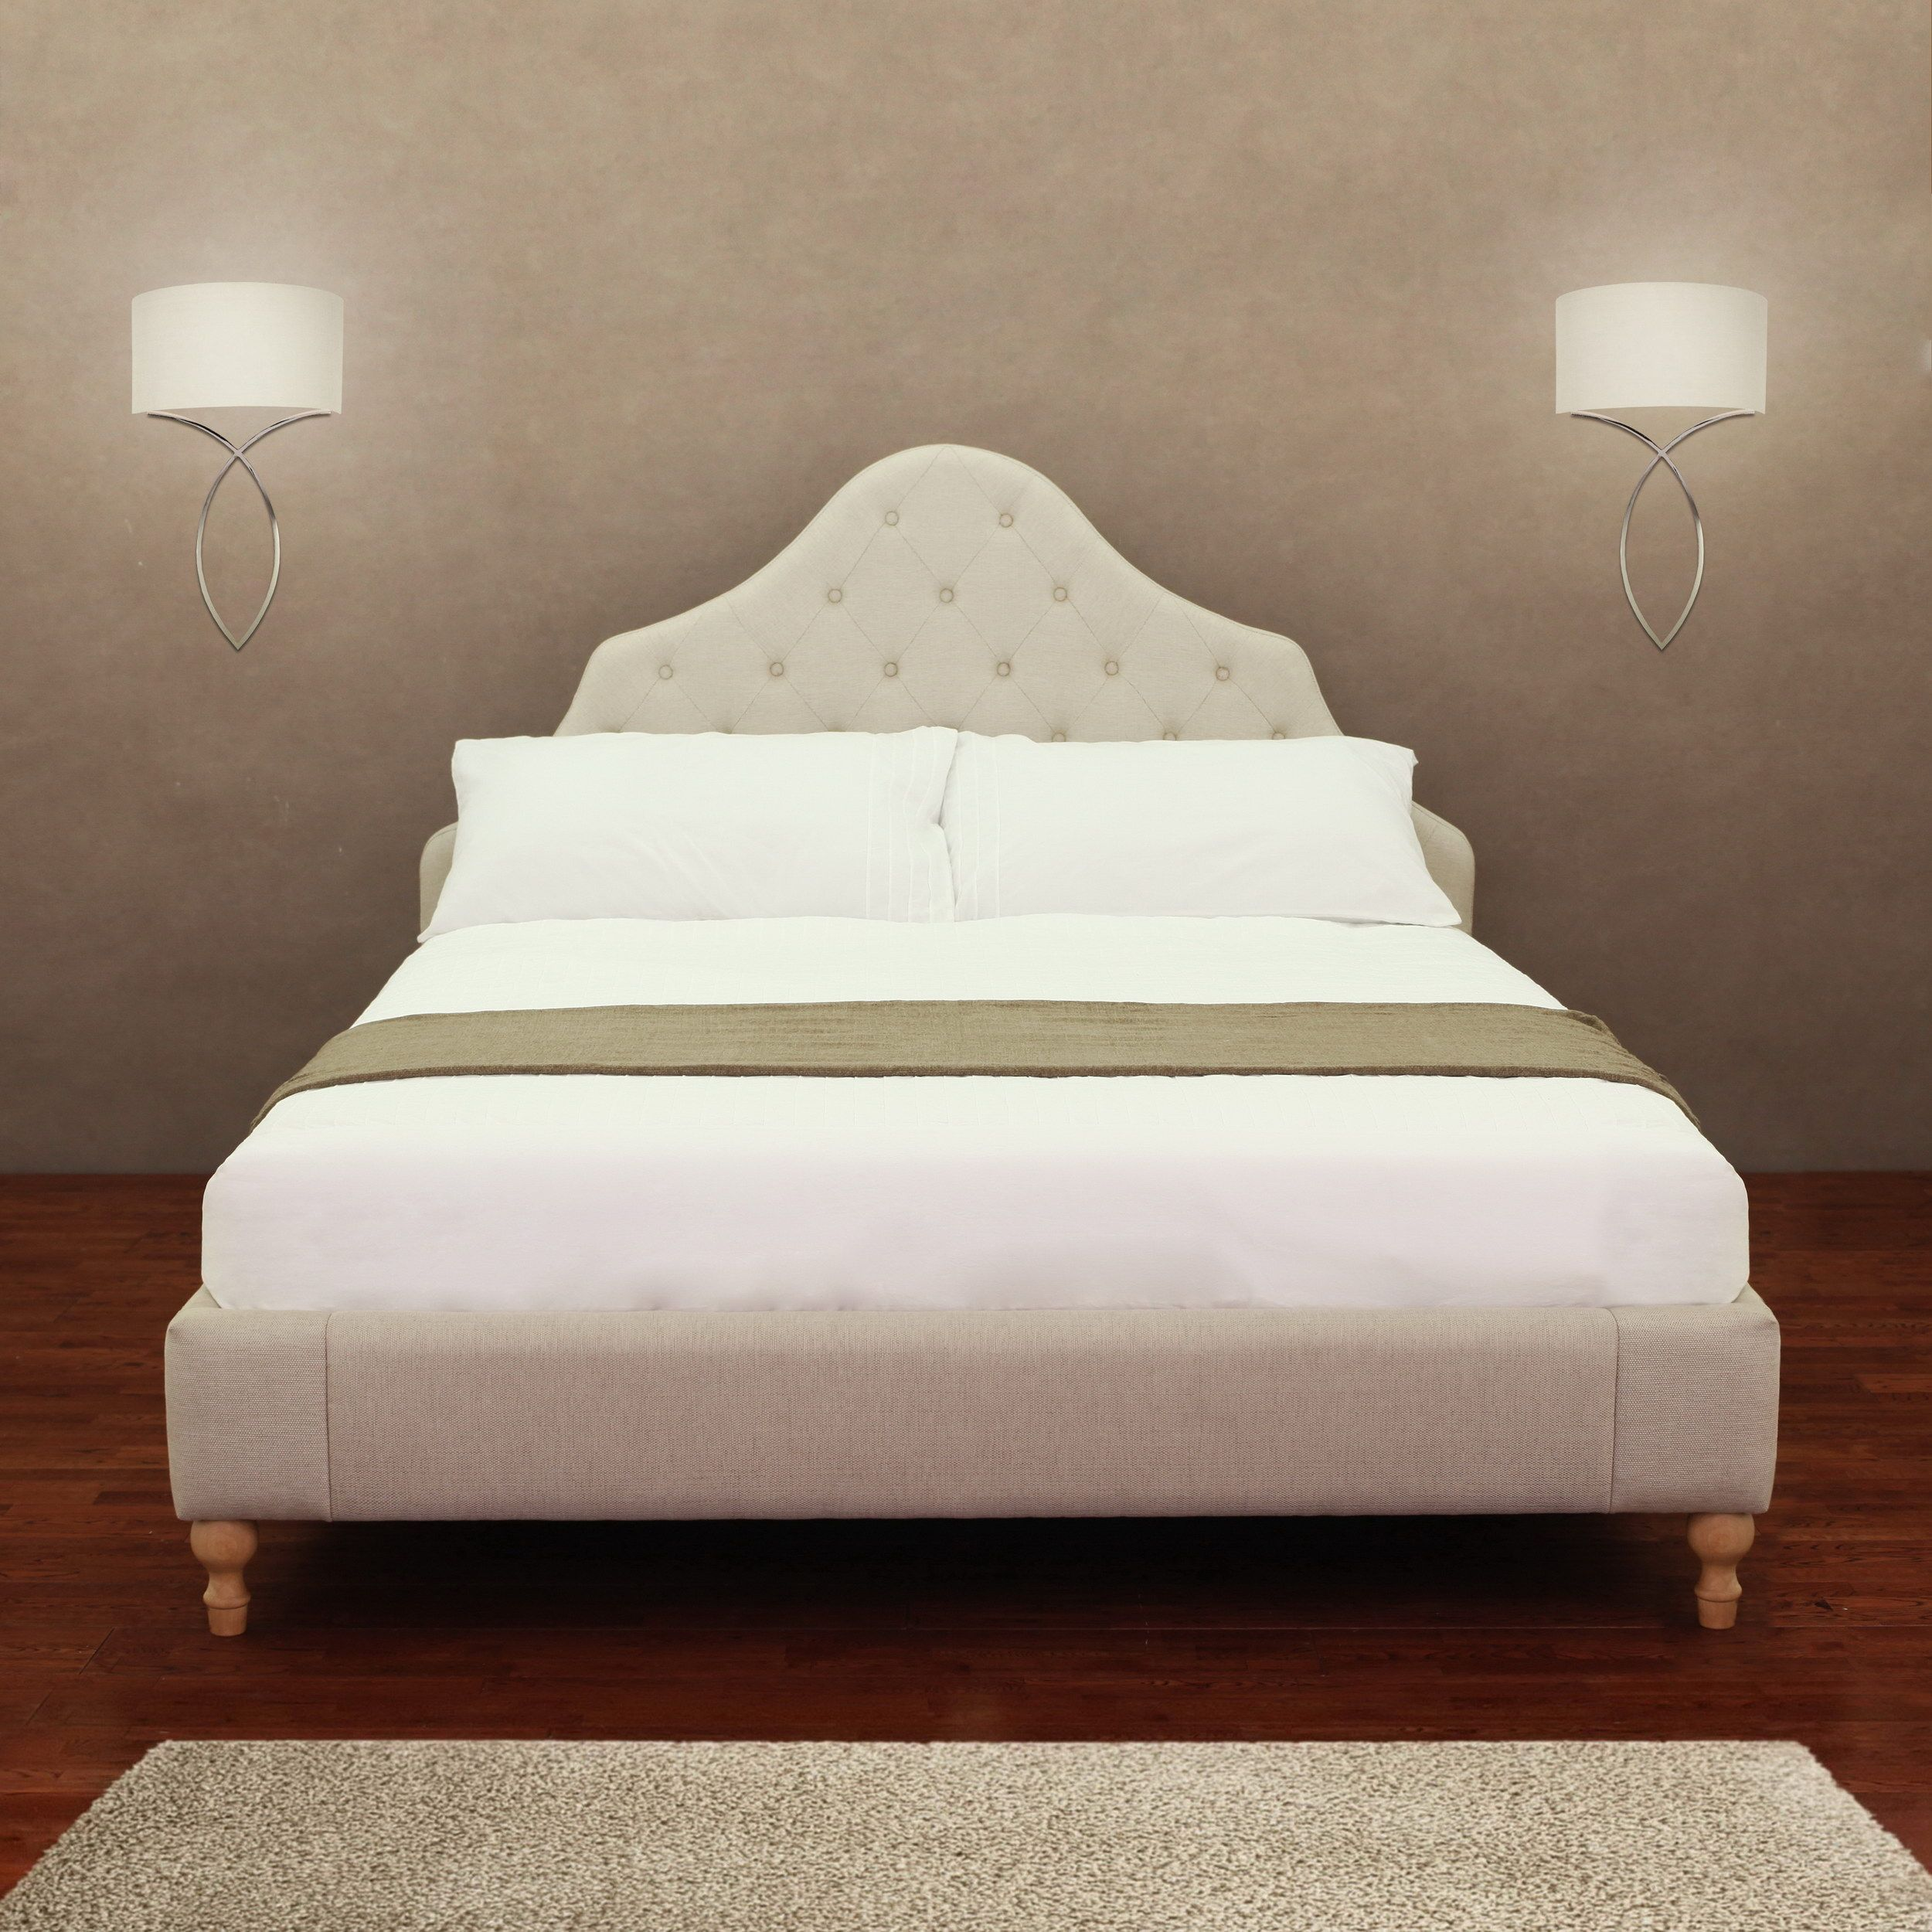 Overstock Com Online Shopping Bedding Furniture Electronics Jewelry Clothing More Queen Bed Frame Queen Size Bed Frames Bed Frame And Headboard